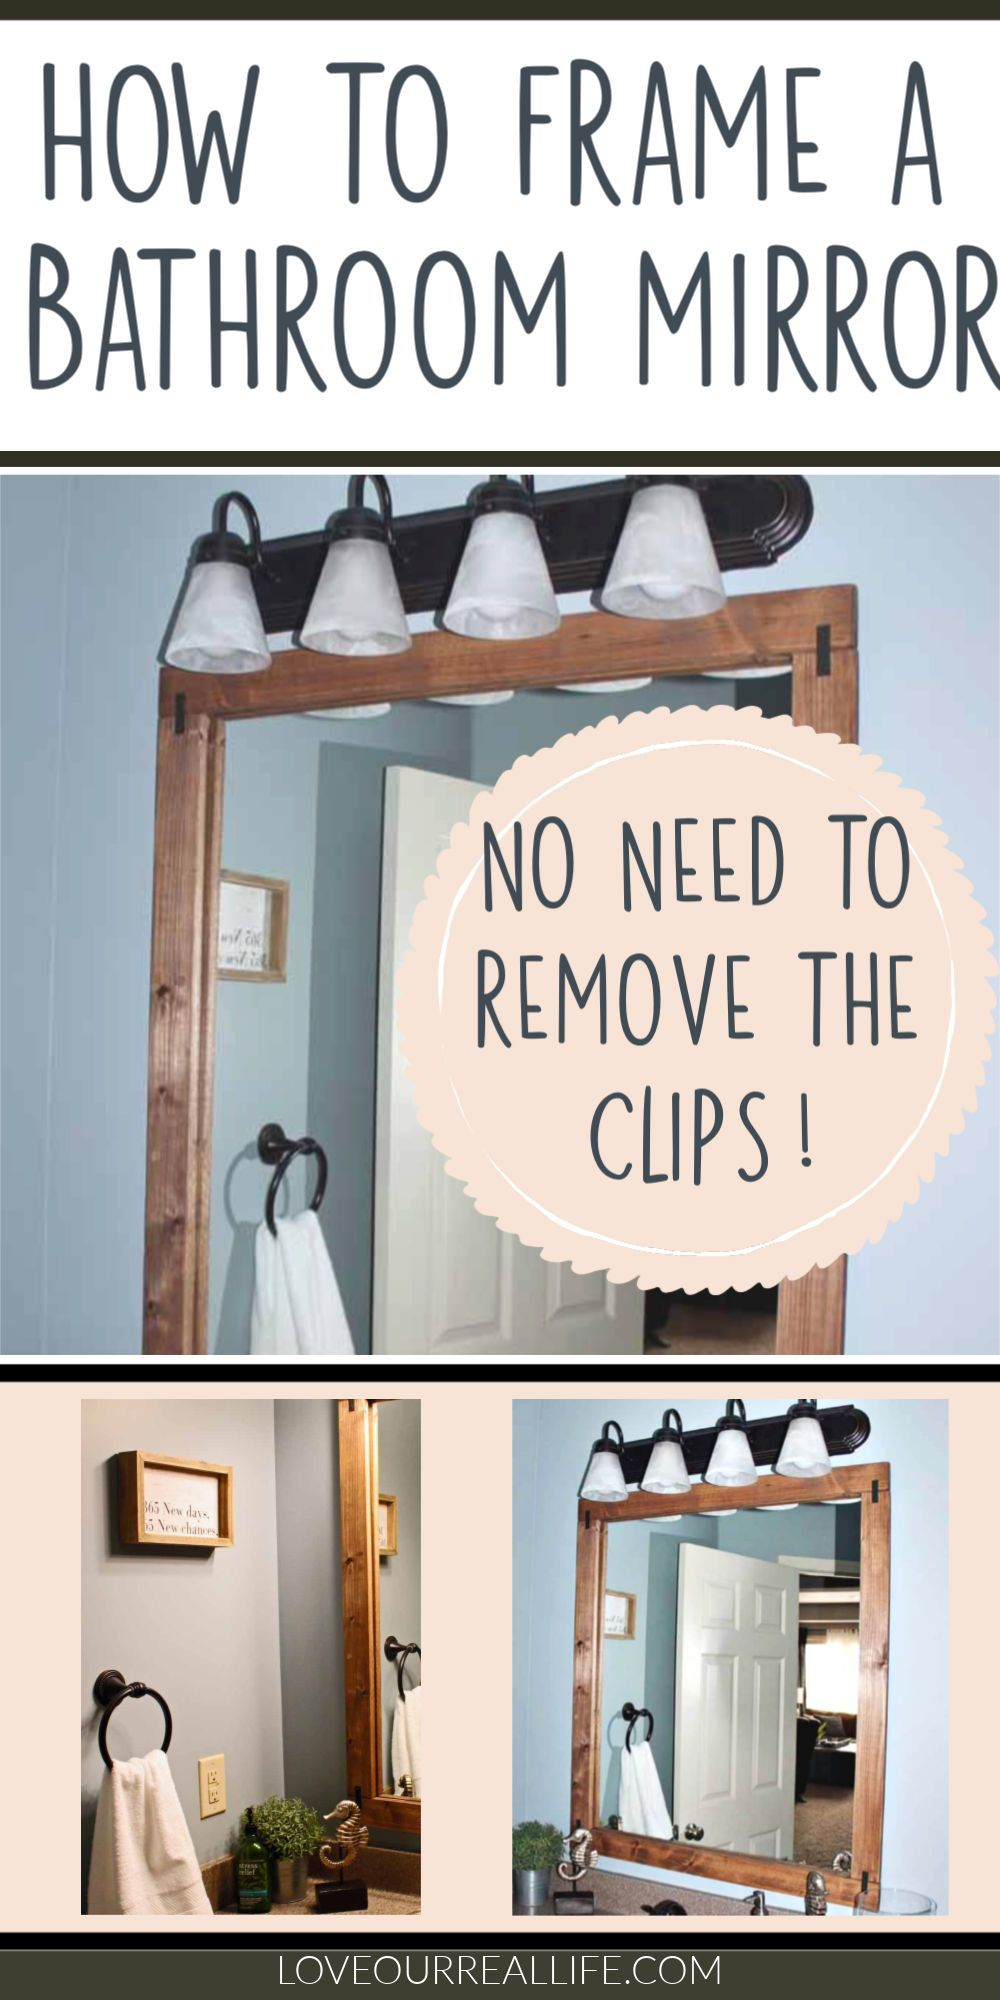 How To Build A Diy Frame To Hang Over A Bathroom Mirror Love Our Real Life In 2020 Dining Room Decor Diy Diy Kitchen Decor Diy Decor Projects